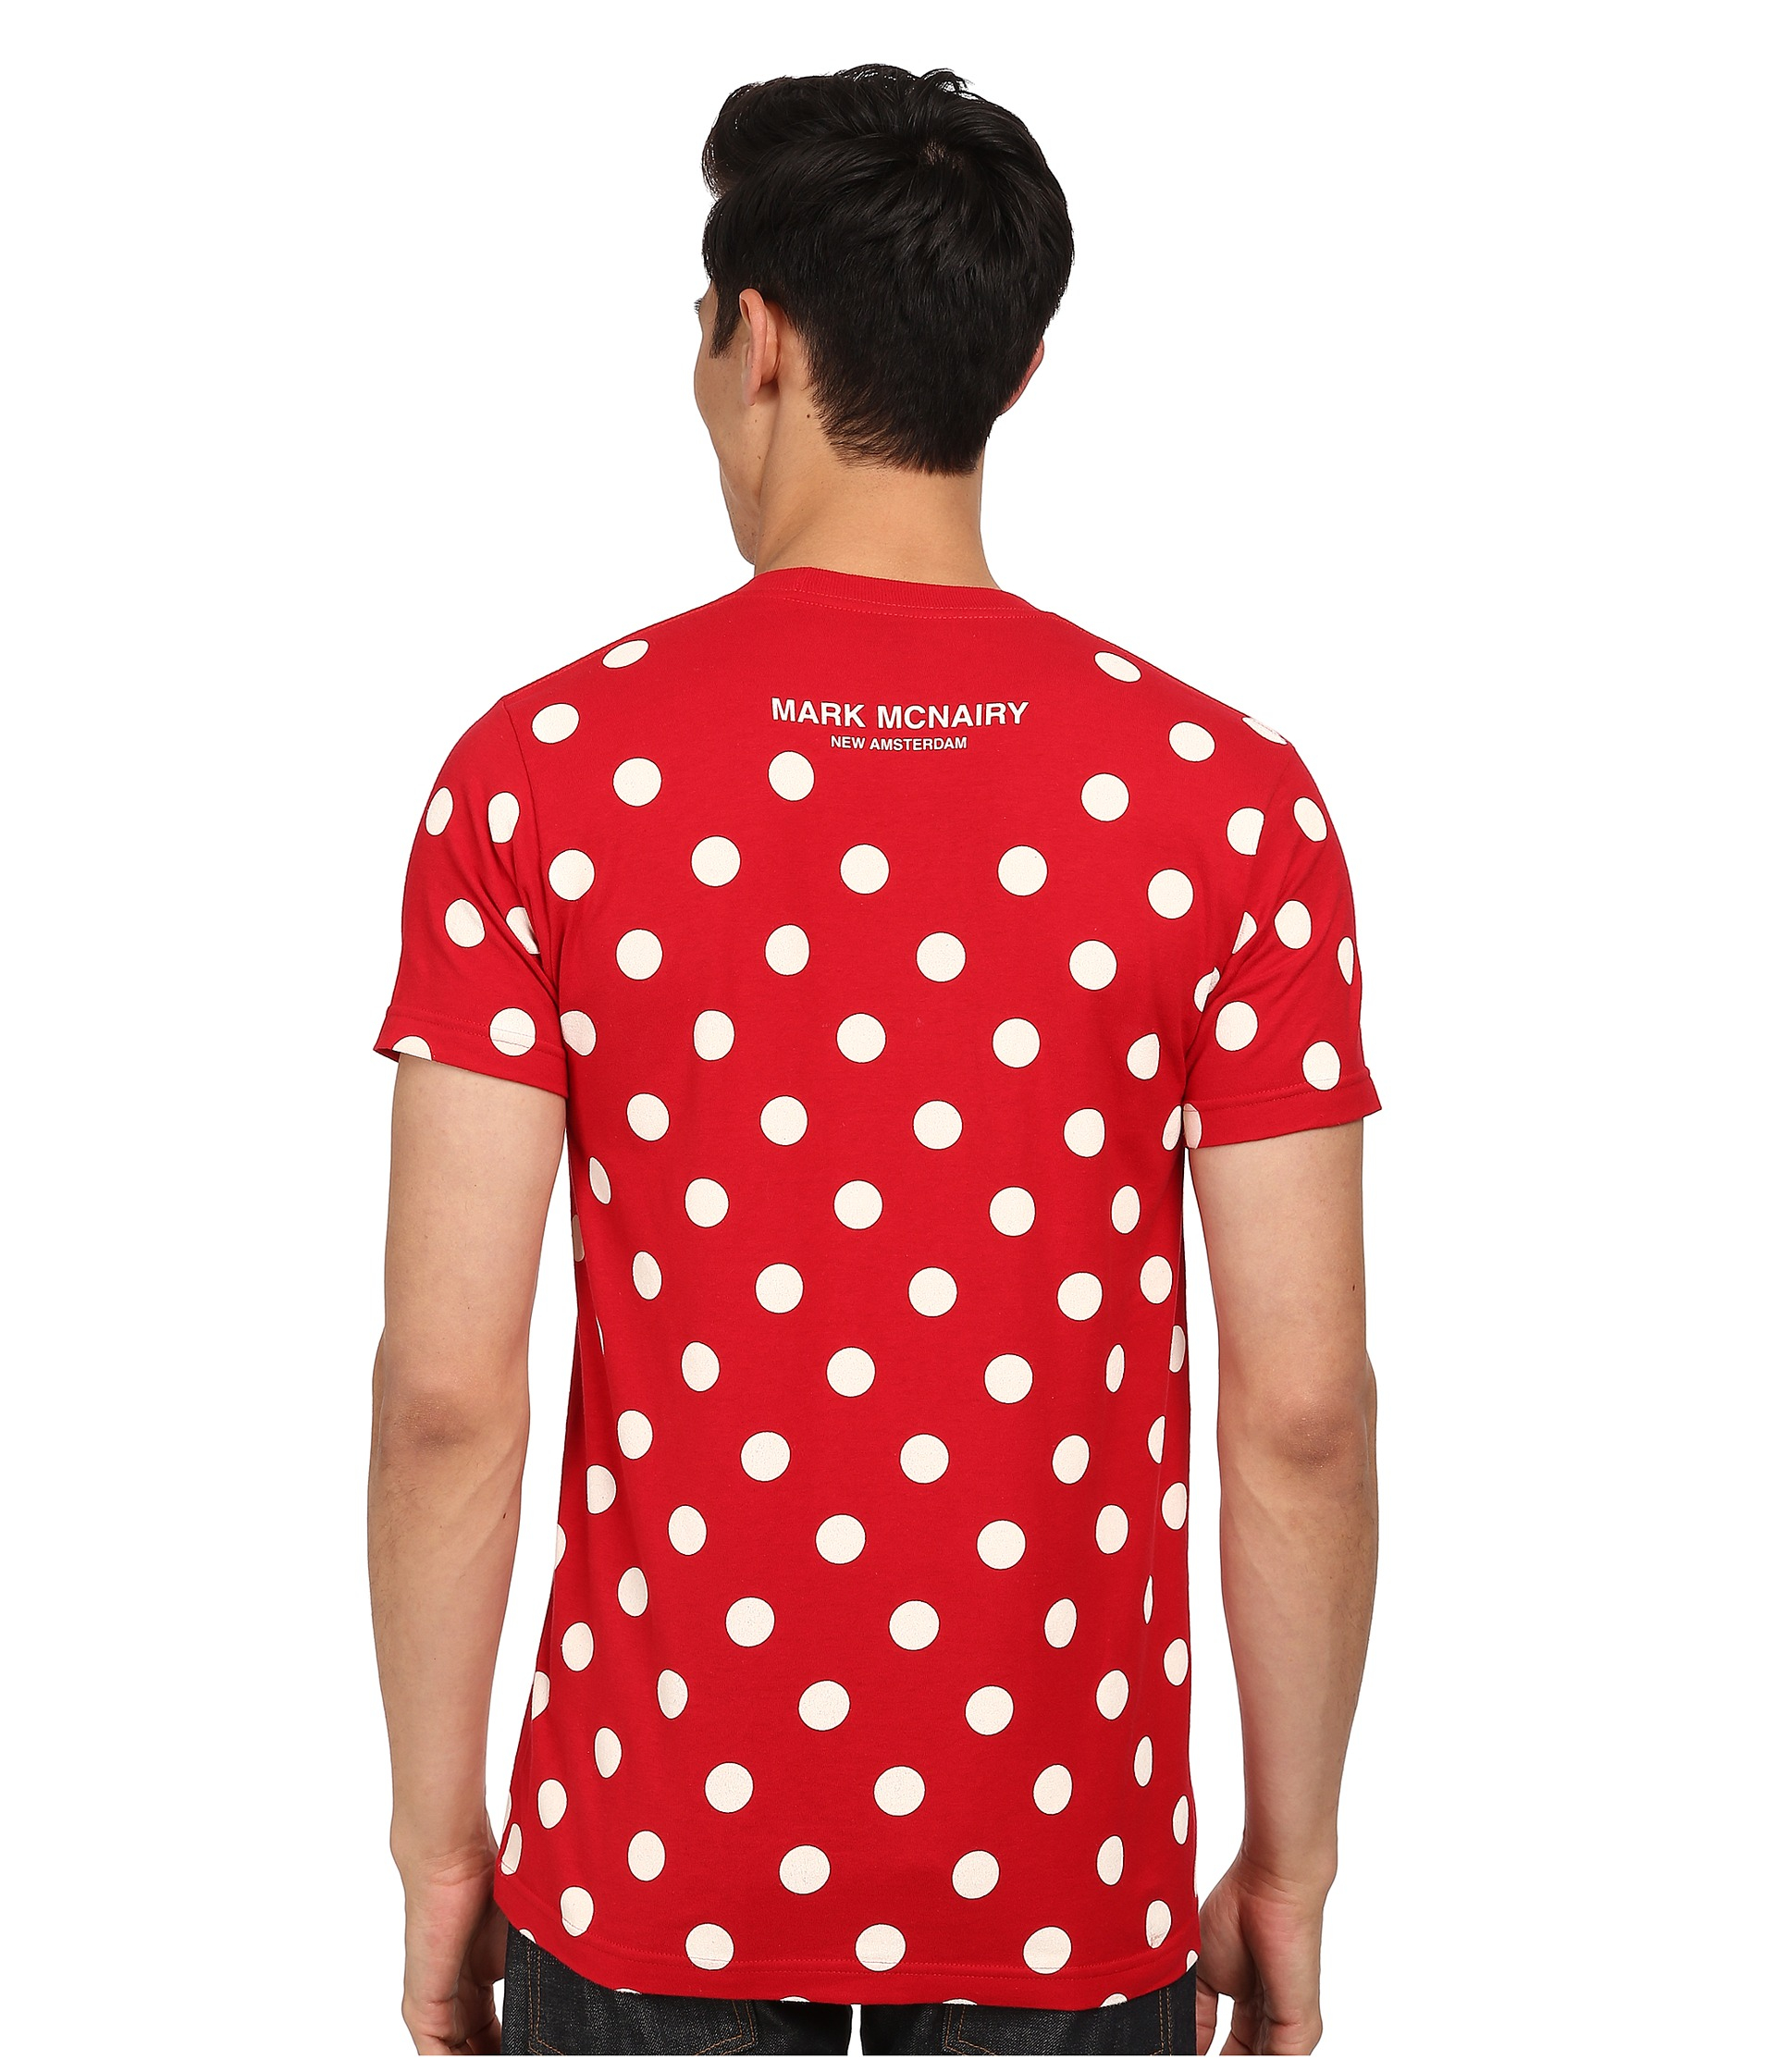 Find polka dot shirt at Macy's Macy's Presents: The Edit - A curated mix of fashion and inspiration Check It Out Free Shipping with $99 purchase + Free Store Pickup.